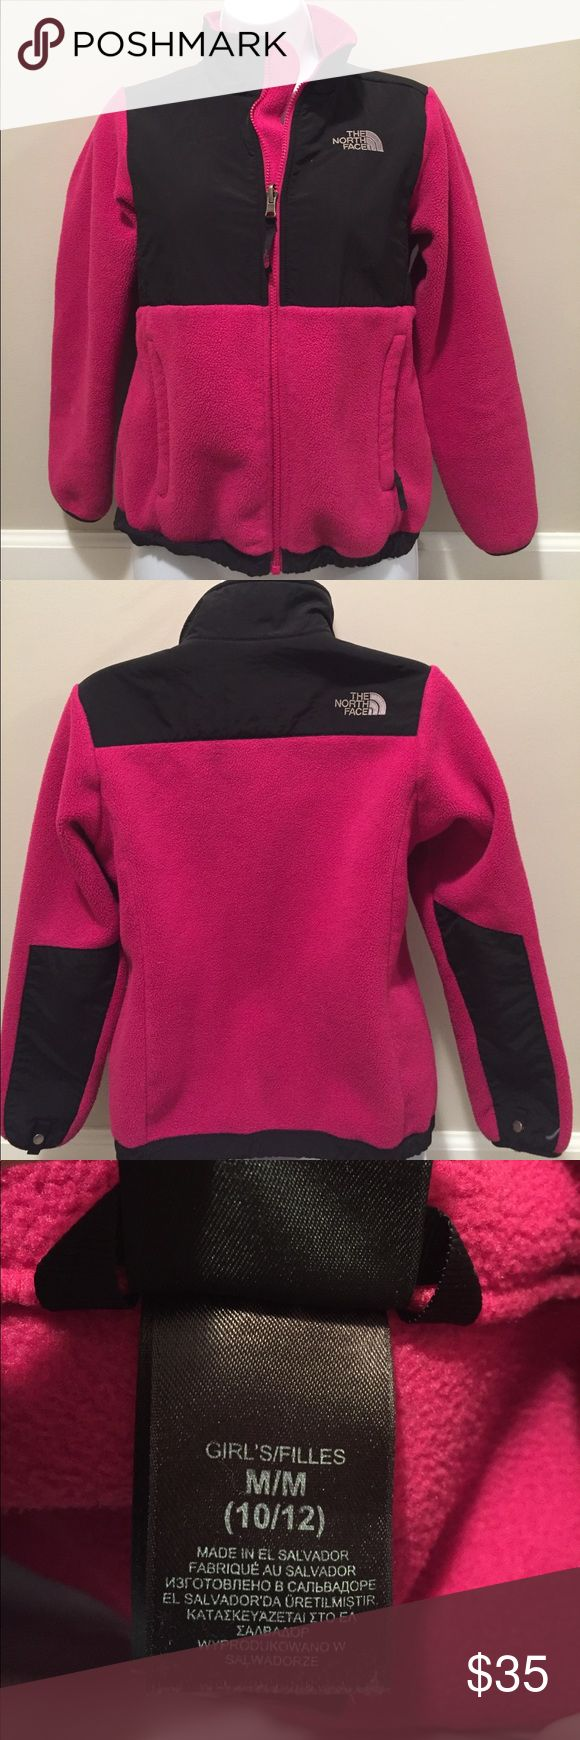 💜Girls North Face Denali - M (10/12) 💜Girls North Face Denali - M (10/12)  This classic North Face Jacket is so warm with thick fleece and a wind resistant top panel.  Perfect for layering under winter coats or wear alone during chilly Fall days.  Very good condition! 💜 The North Face Jackets & Coats